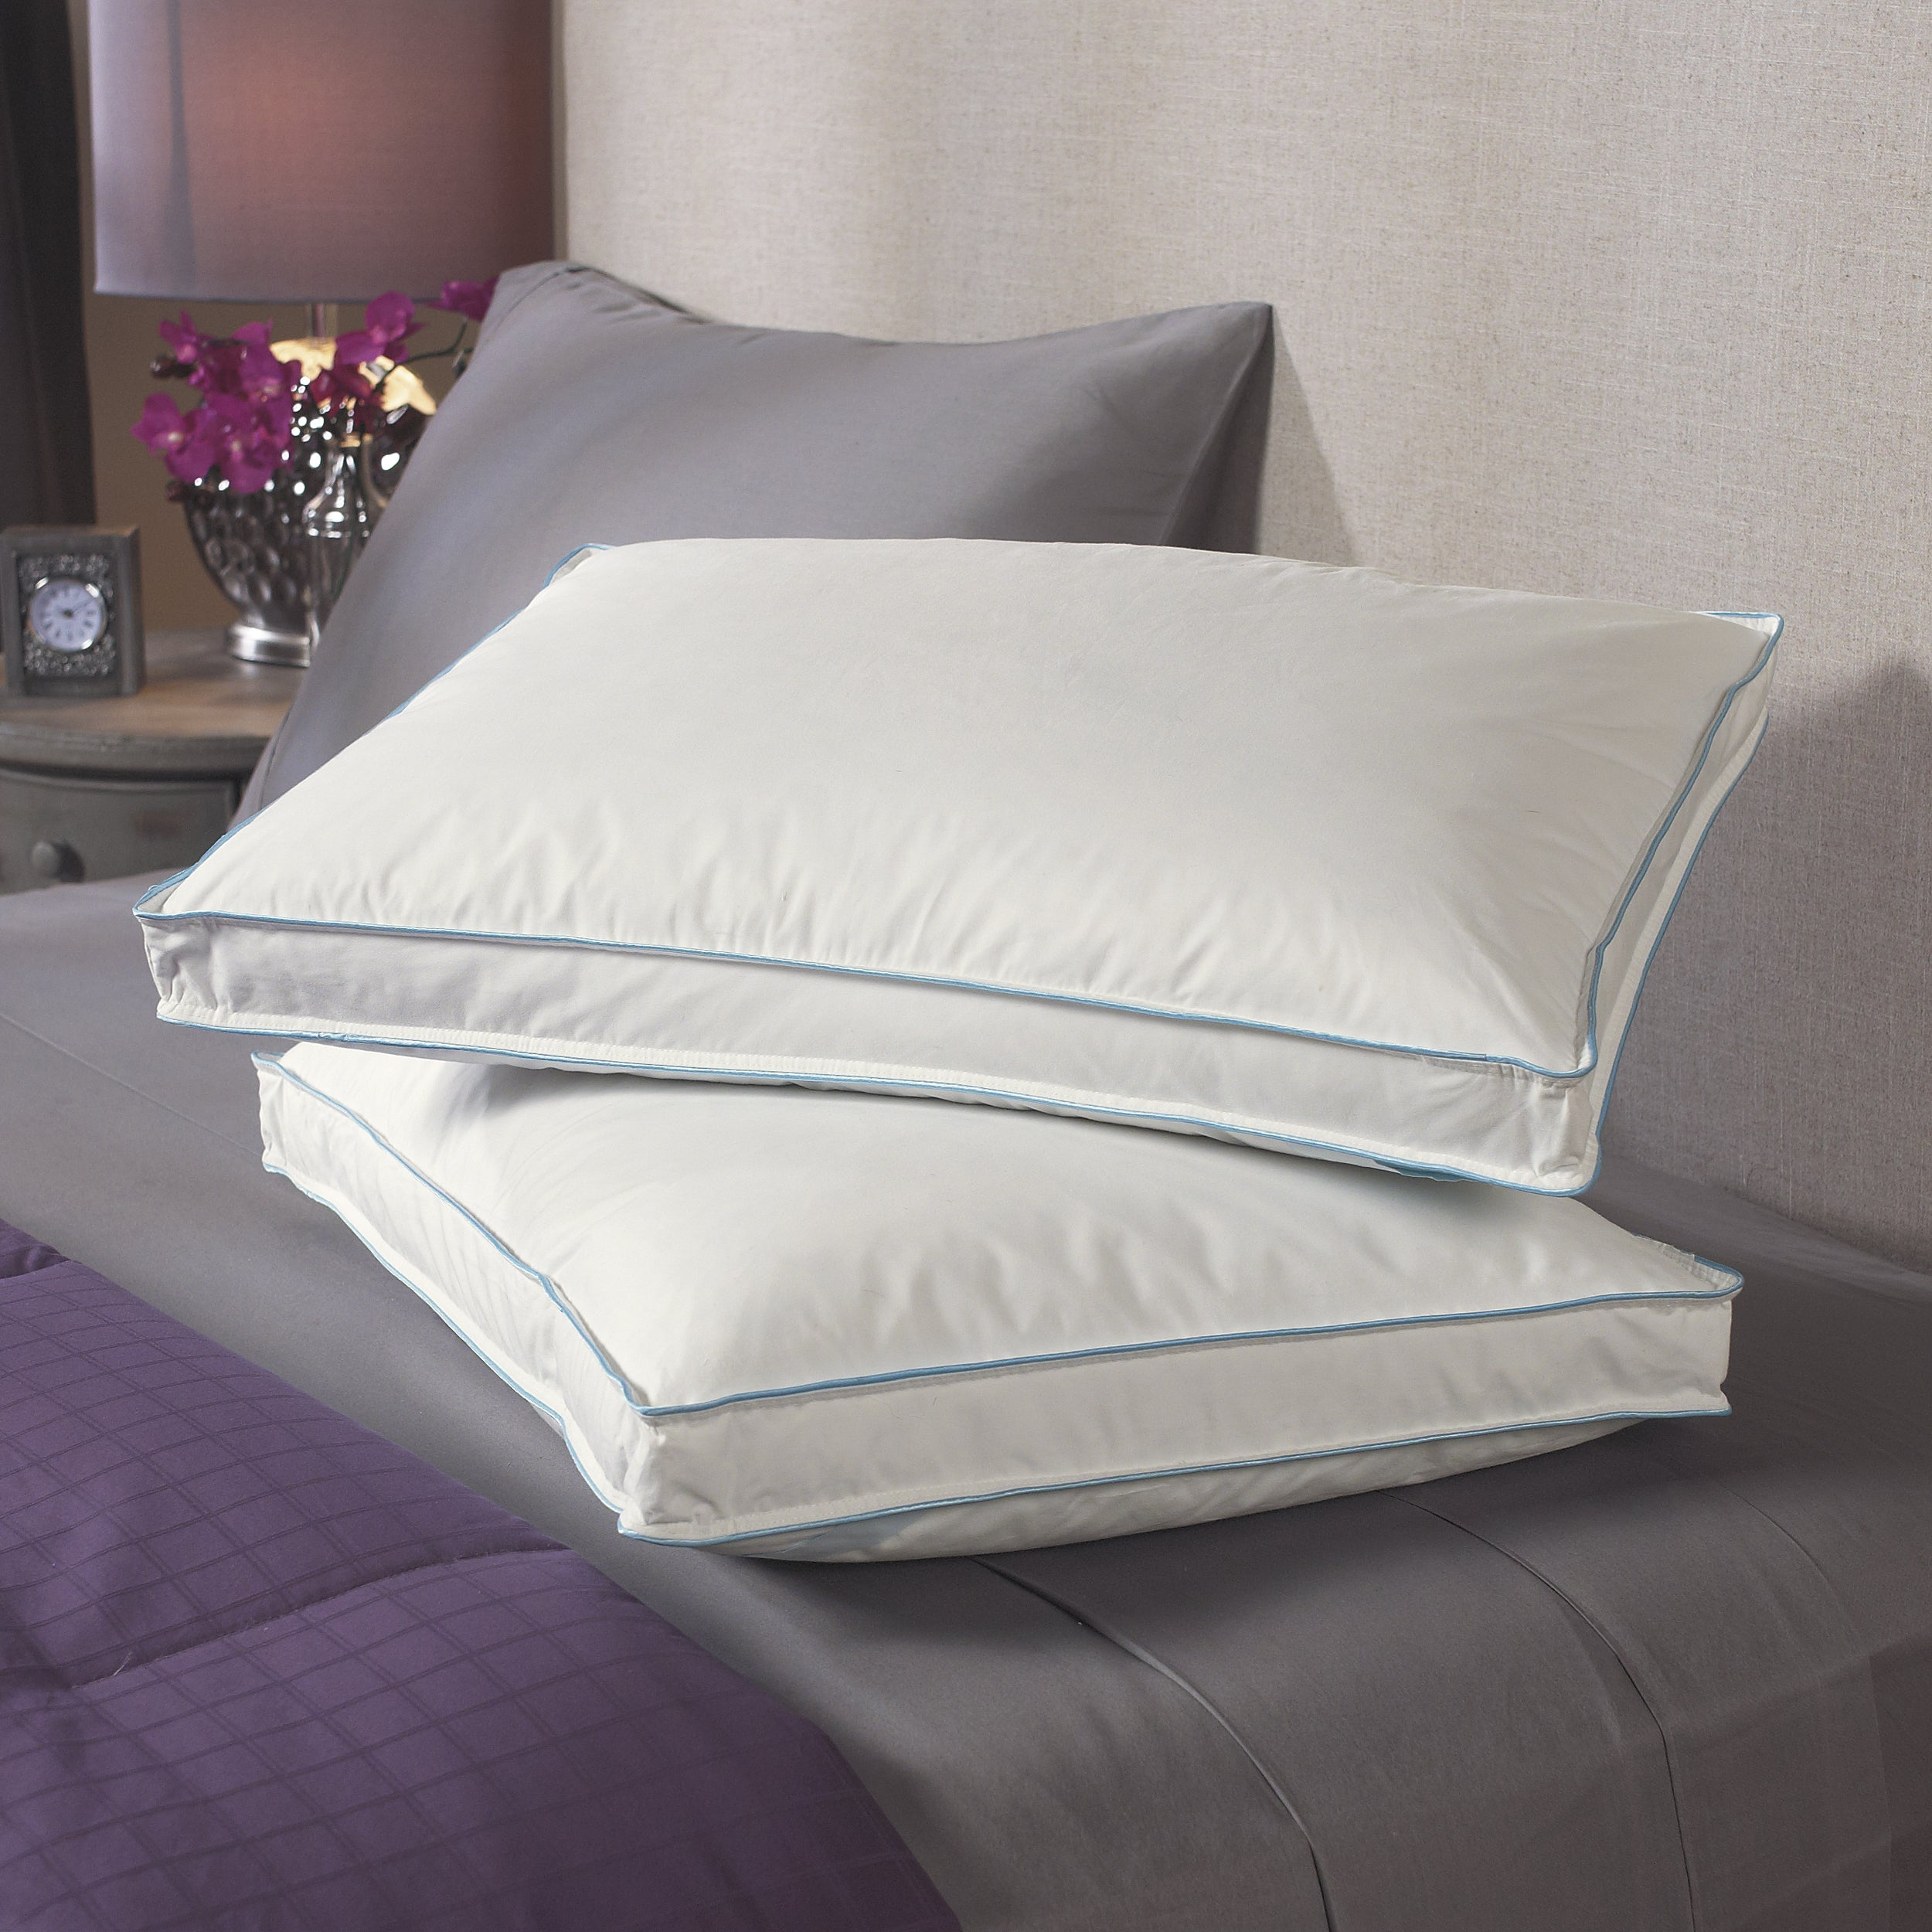 Circle of Down Extra Support 300 Thread Count Pillows (Set of 2)